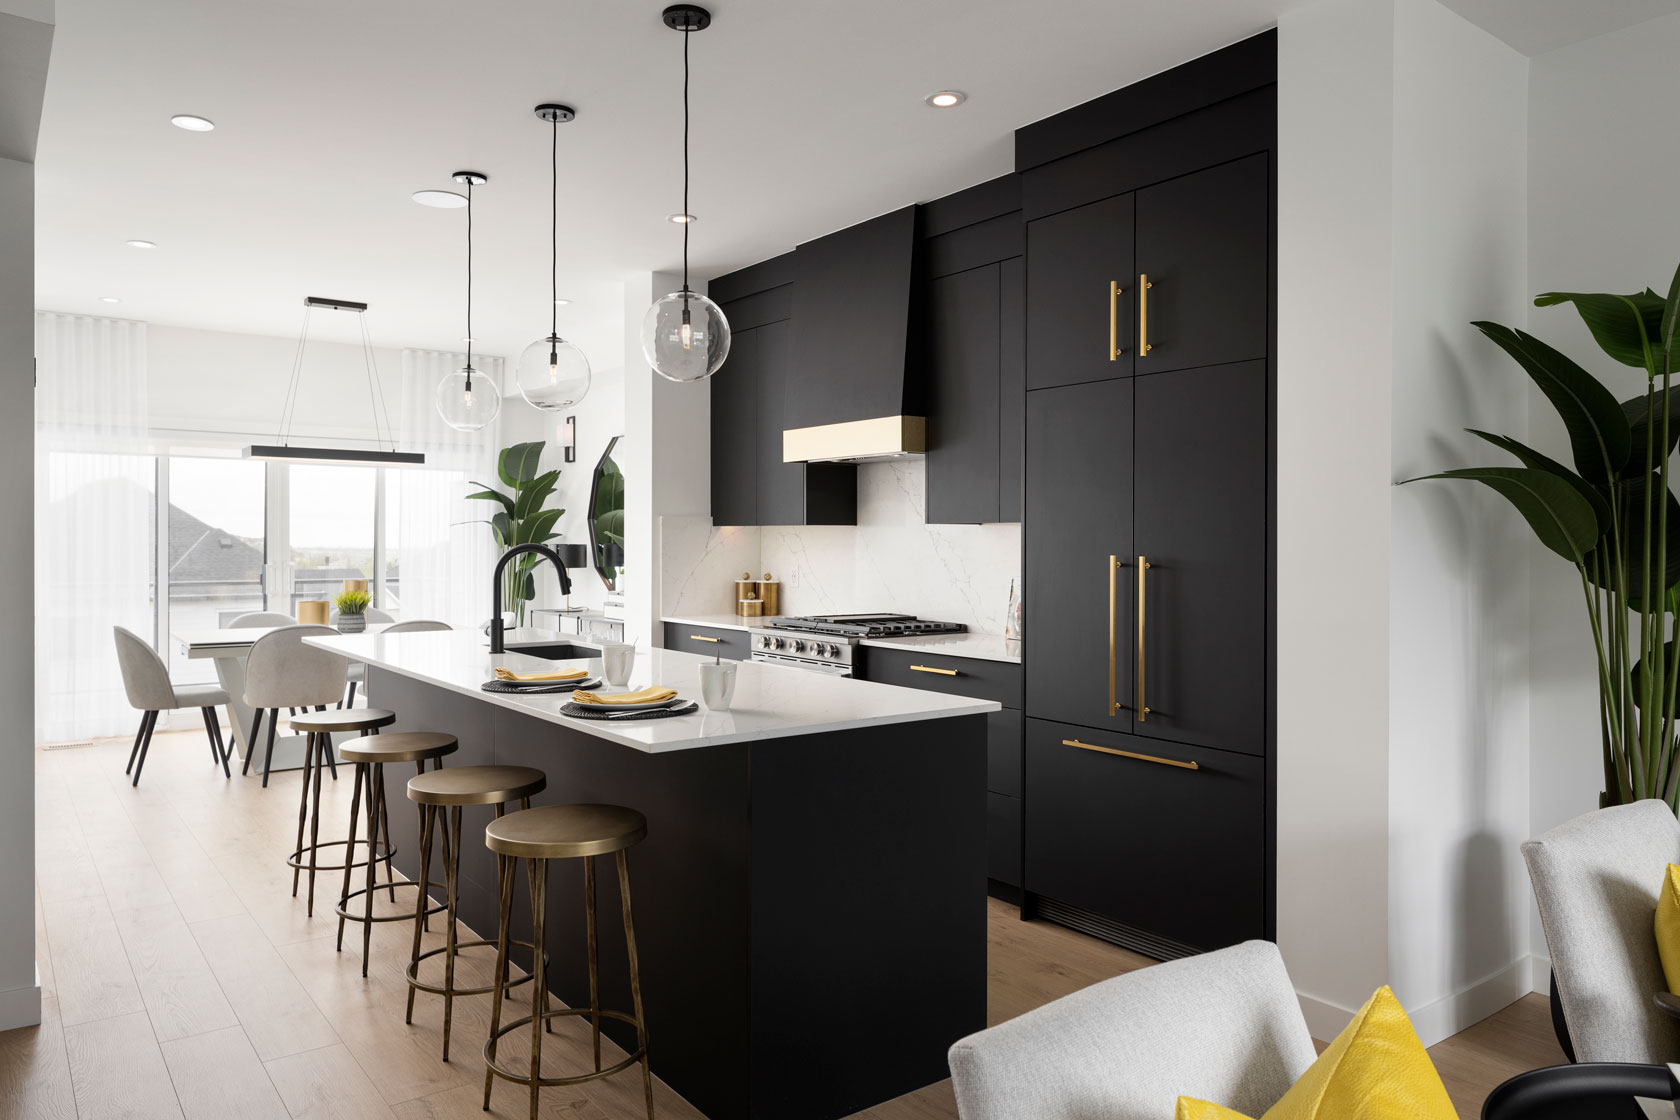 TRUMAN Homes - TImberline Street Towns Southwest Calgary Show Home